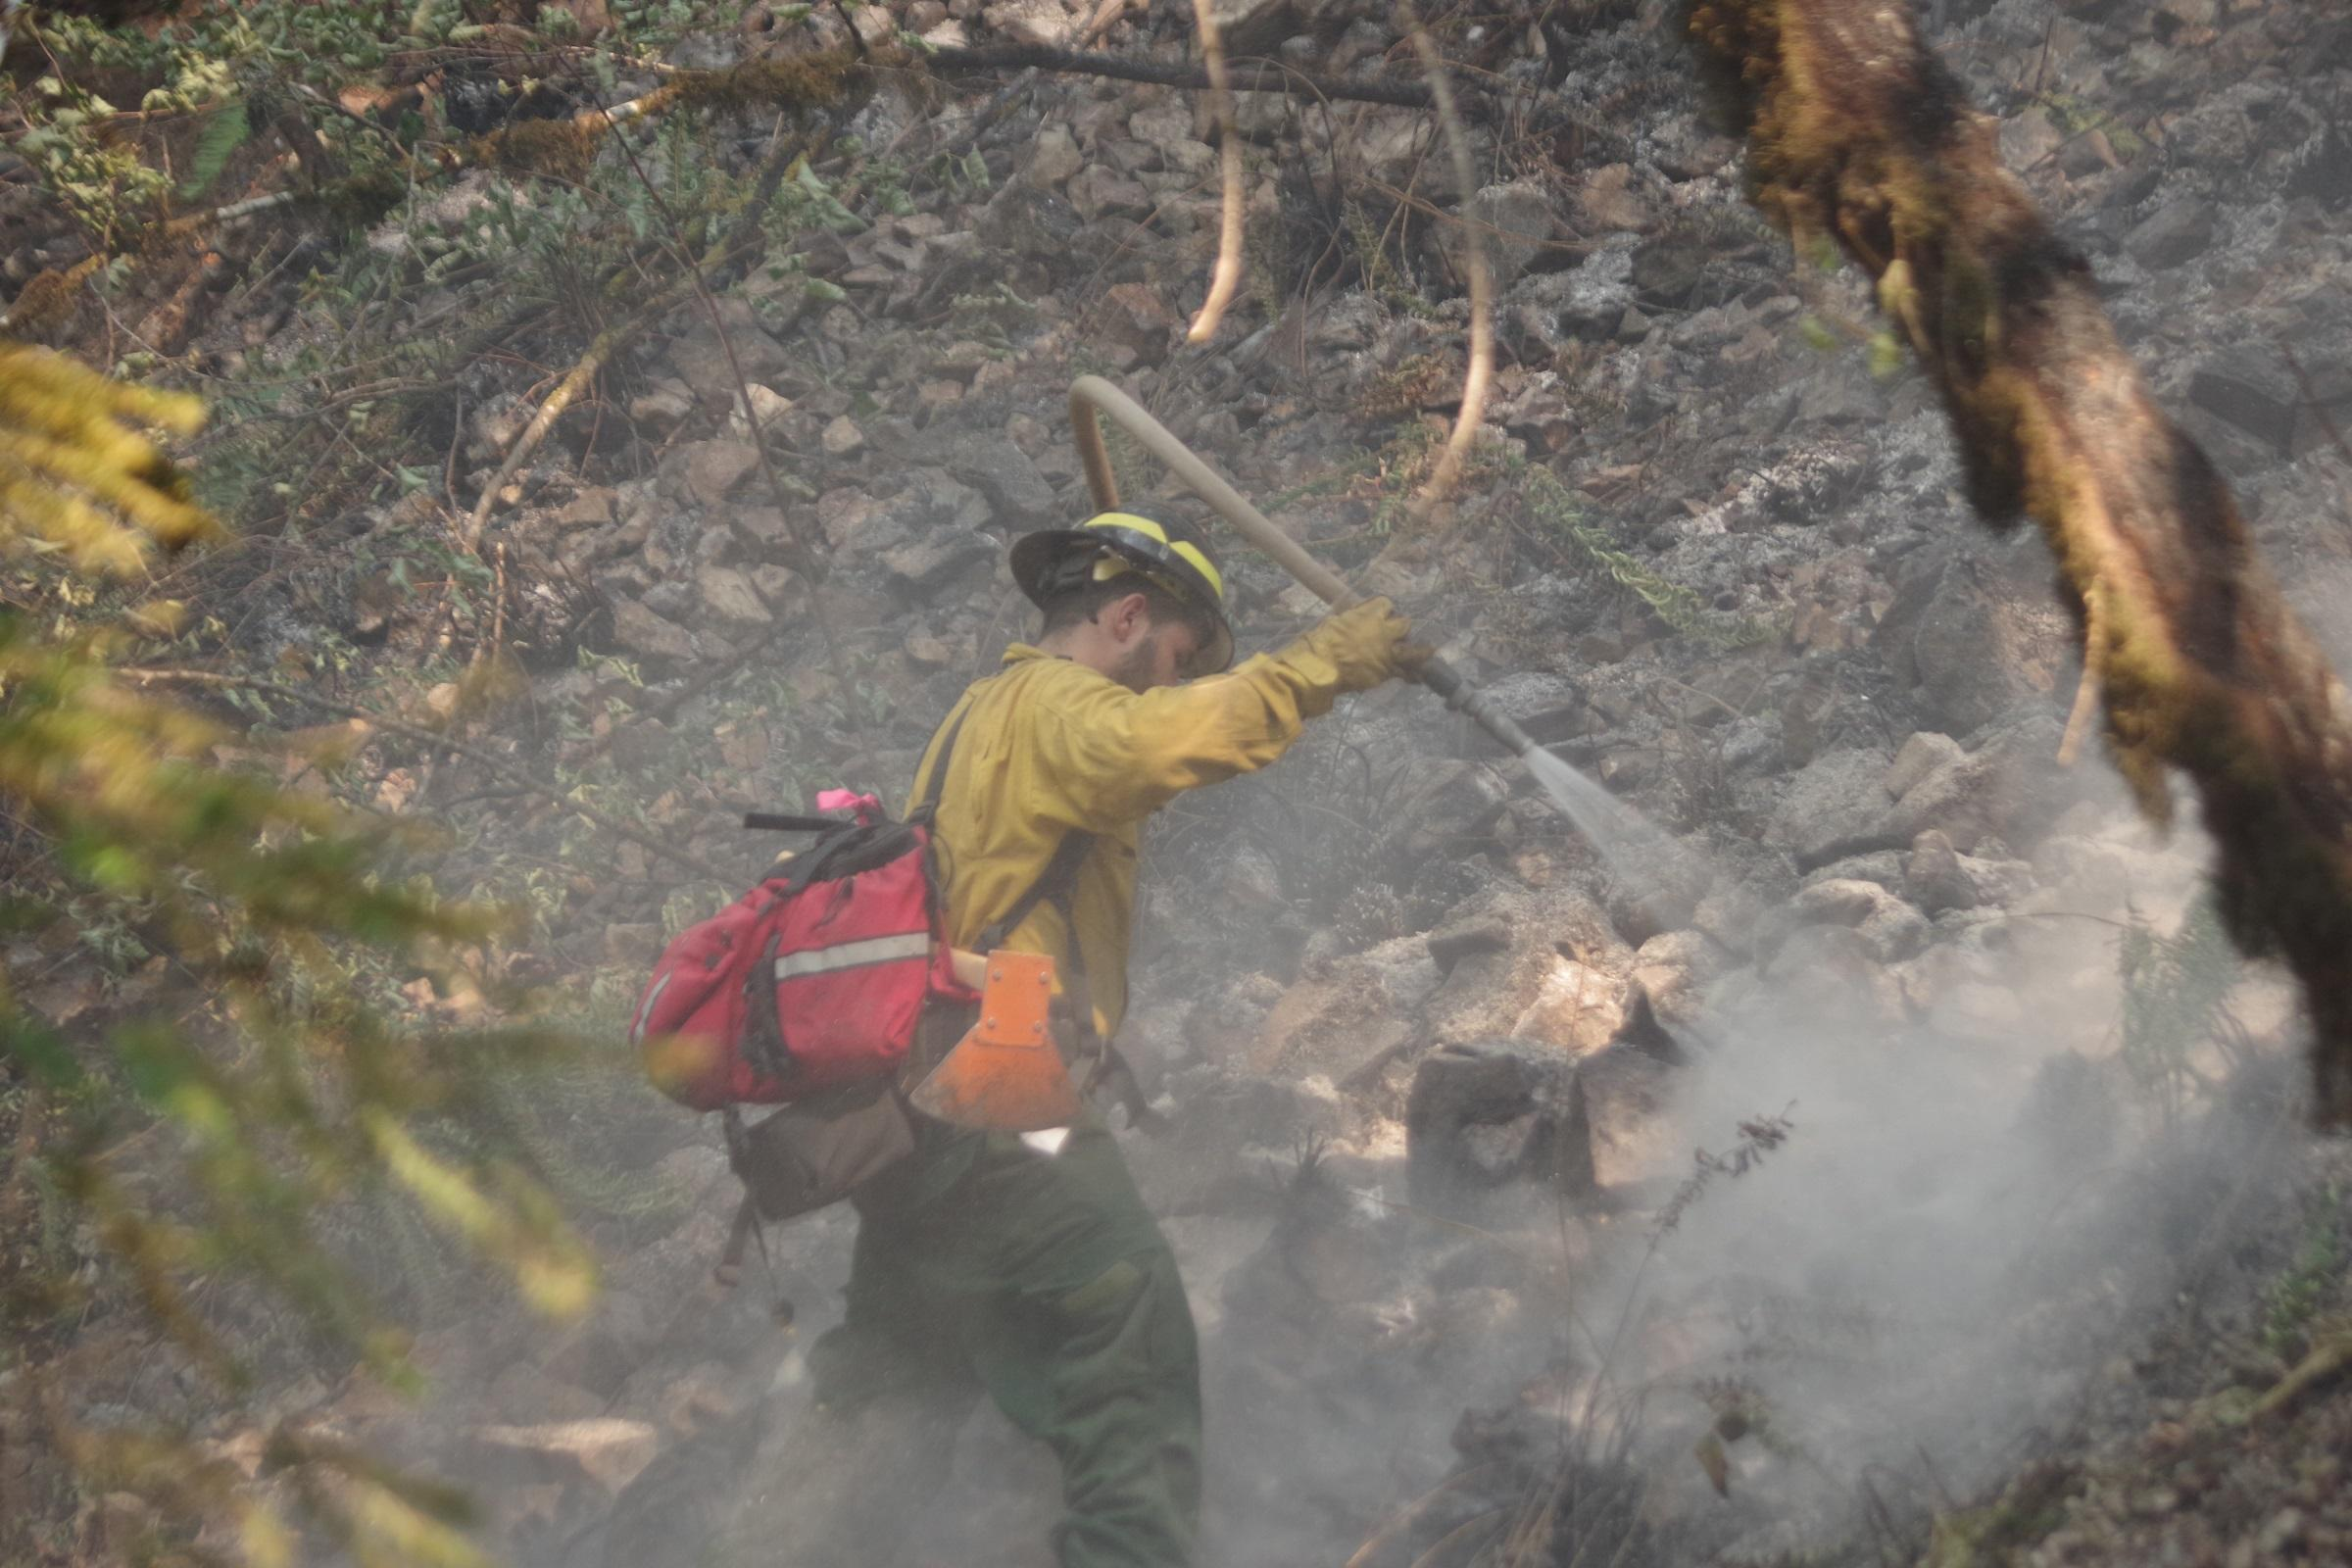 Overnight mapping places the fire at 11,668 acres as of July 29, 2019. Fire managers say the blaze is 10 percent contained. The fire broke out late Wednesday, July 24, the result of an illegal campfire. The blaze grew rapidly over the next 72 hours. (Kyle Reed/DFPA)